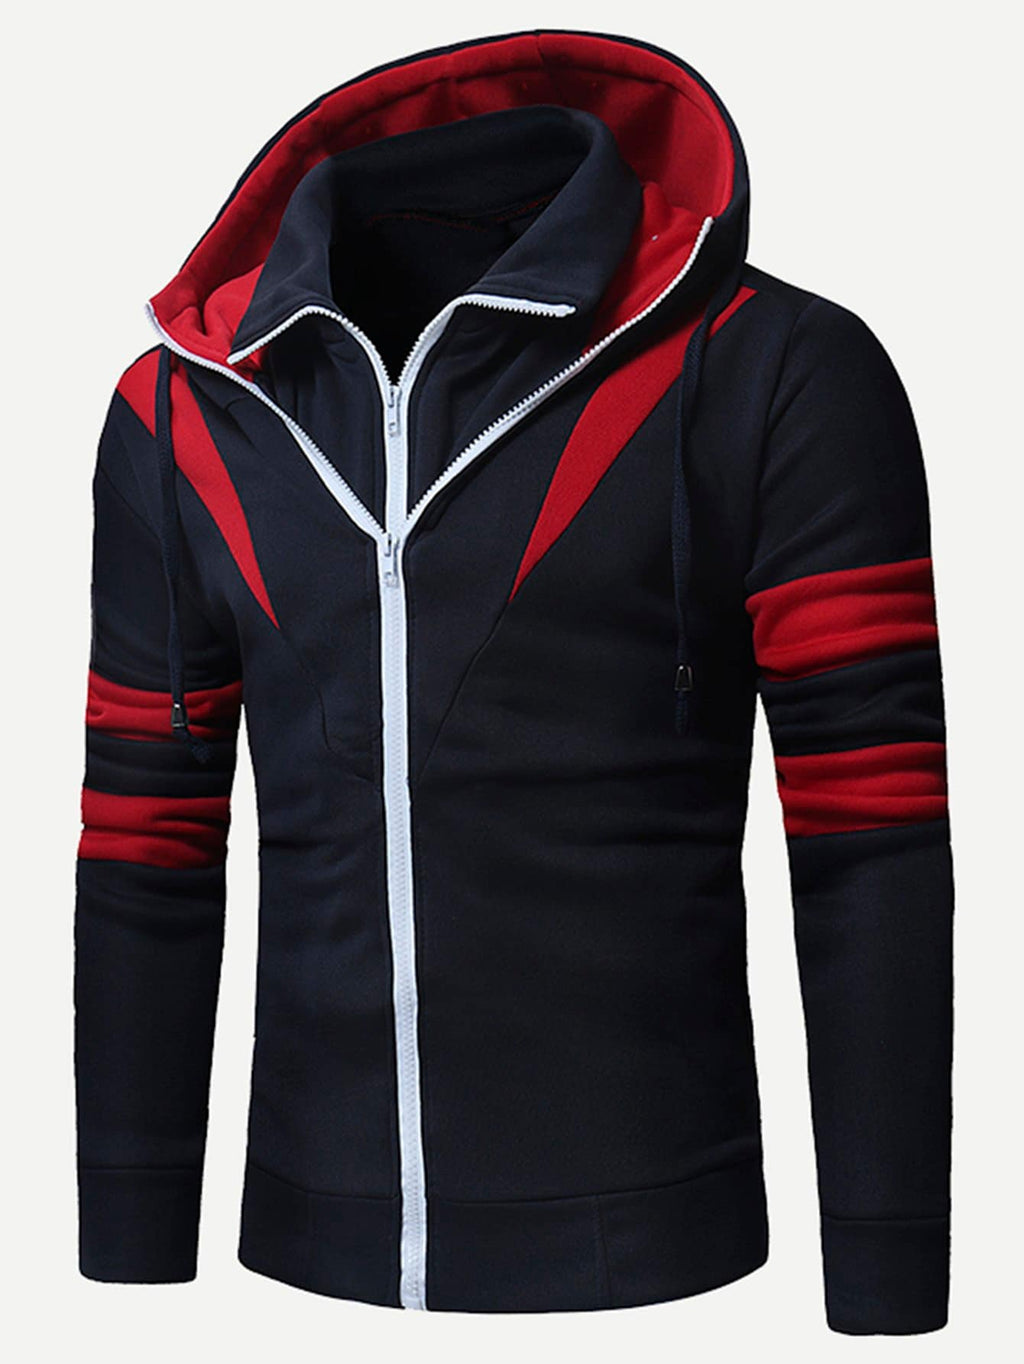 Unique Hoodies - Men Color Block 2 In 1 Hooded Sweatshirt